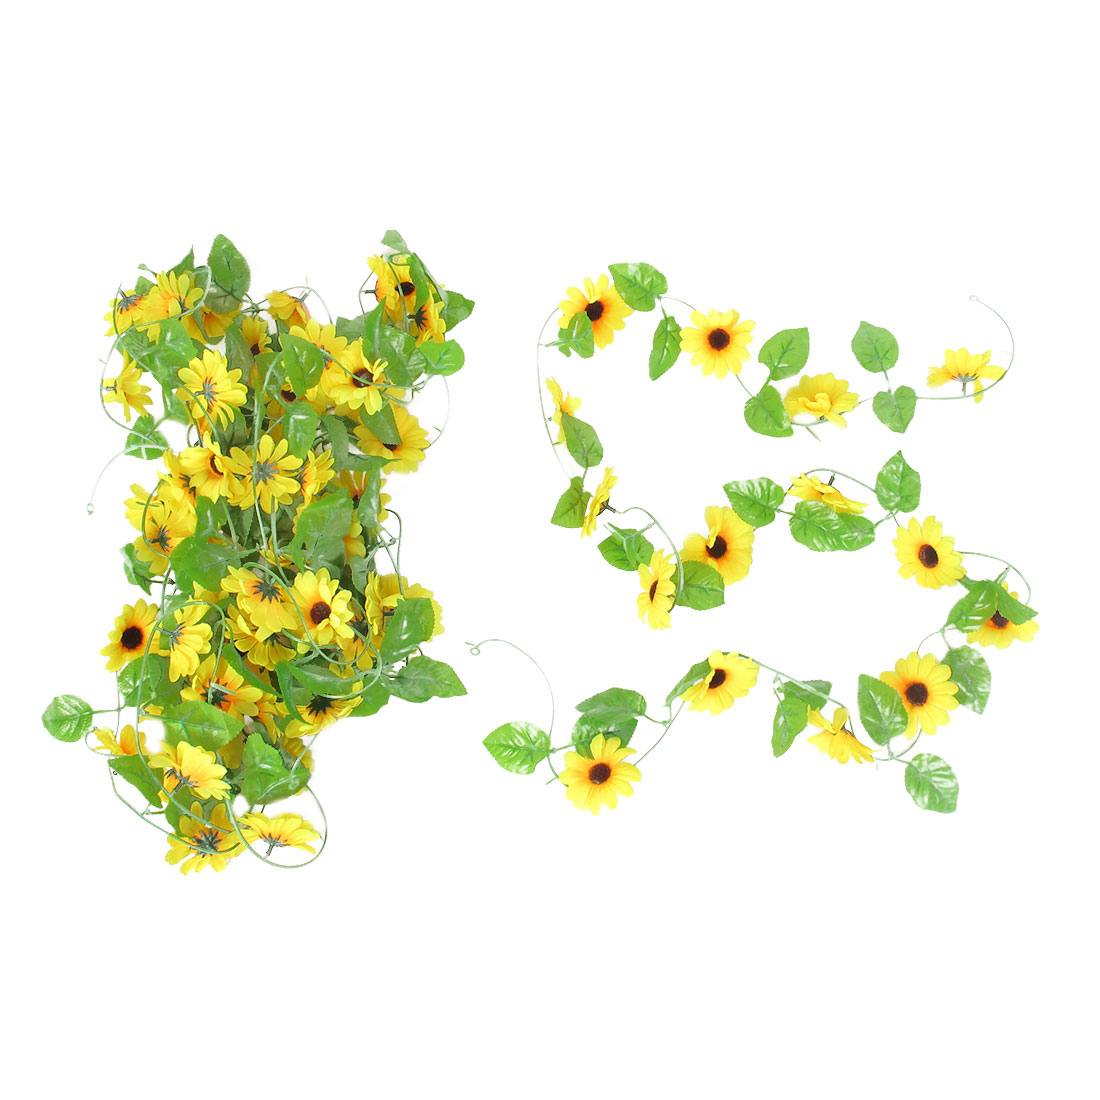 5 Pcs 2.4M Long Colorful Plastic Fabric Sunflower Emulational Manmade Ornament Hanging Vine